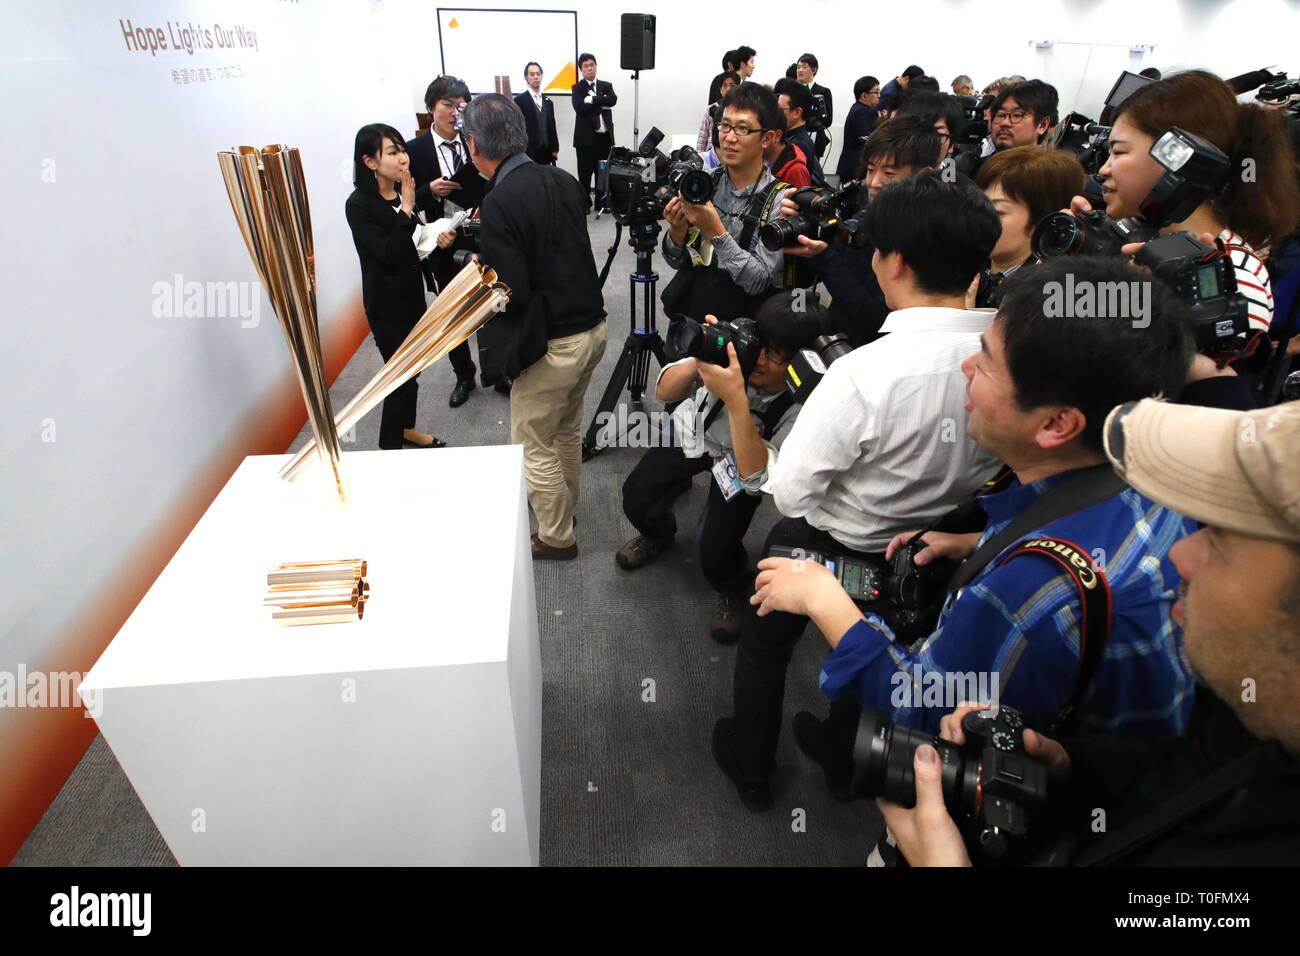 Tokyo, Japan. 20th Mar, 2019. General view, March 20, 2019 : The Tokyo 2020 Olympic Games Organizing Committee holds a Torch Relay Press Conference to announc the design and emblem for the Tokyo 2020 Olympic Torch in Tokyo, Japan, on Wednesday, March 20, 2019. The Olympic flame is scheduled to arrive at Japan's Air Self-Defense Force Matsushima base in Miyagi prefecture from Athens, Greece, in one year on March 20. 2020. Credit: Sho Tamura/AFLO SPORT/Alamy Live News - Stock Image